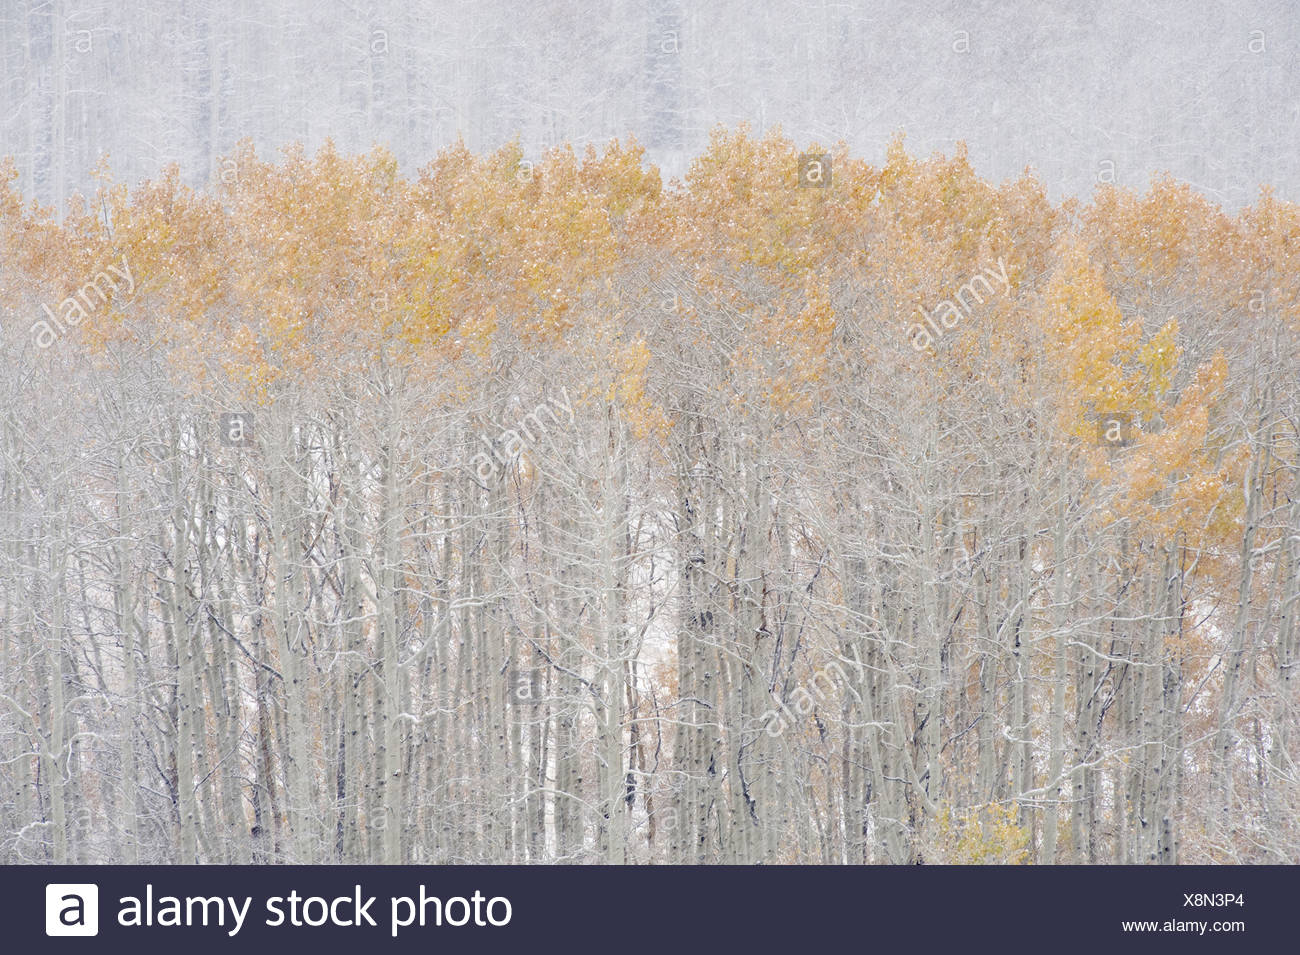 Aspen trees in autumn during snow fall The Wasatch Mountains in Utah - Stock Image